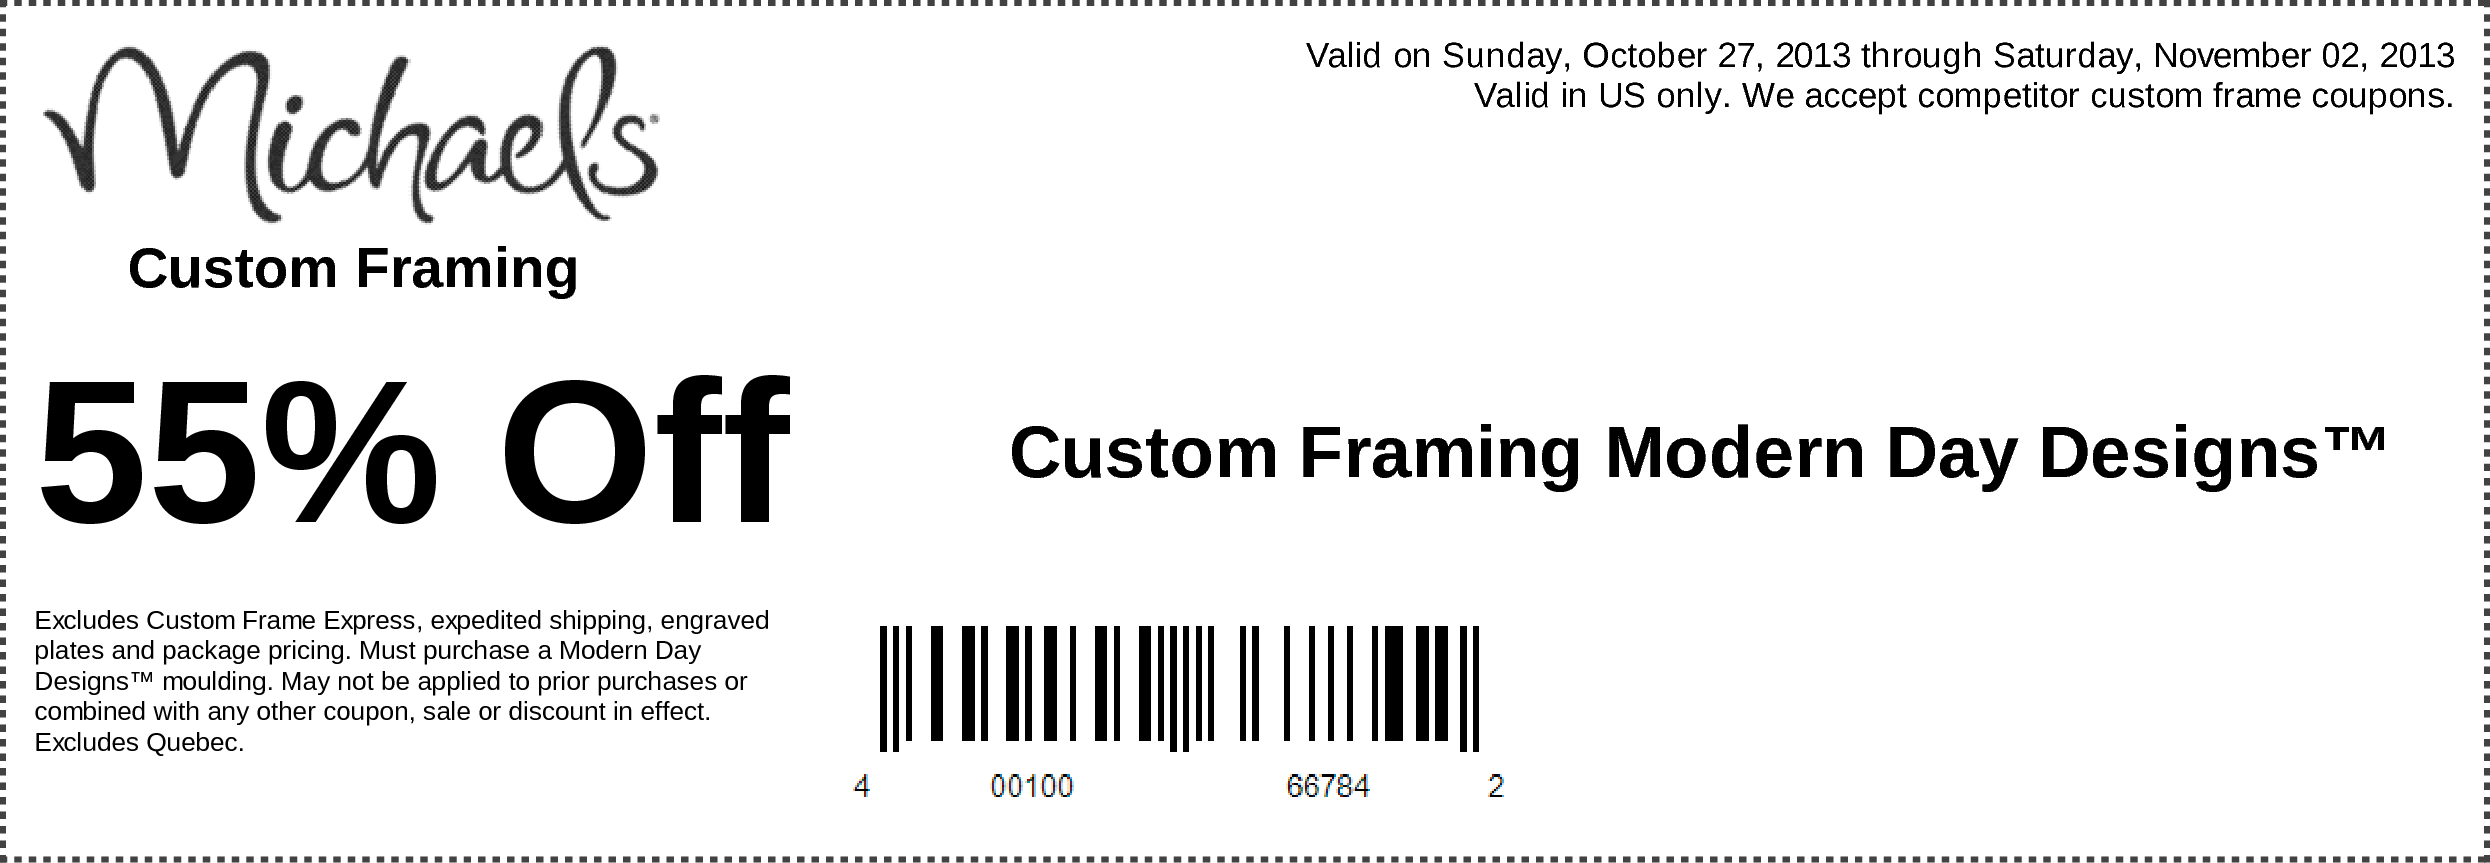 michaels off custom framing designs printable coupon - Michaels Frame Sale